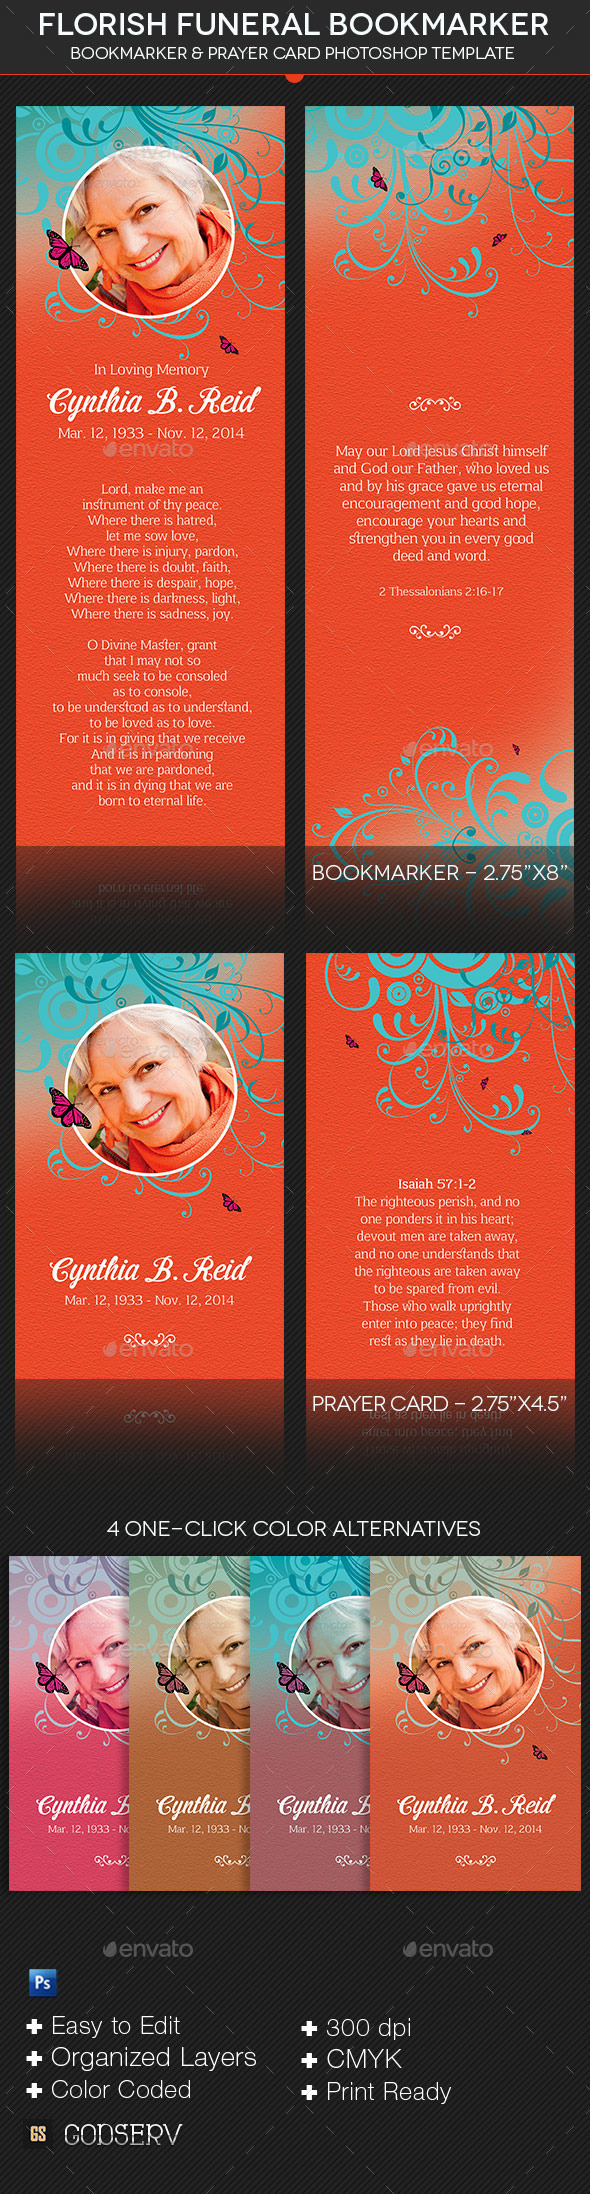 GraphicRiver Florish Funeral Bookmarker Template 10205434